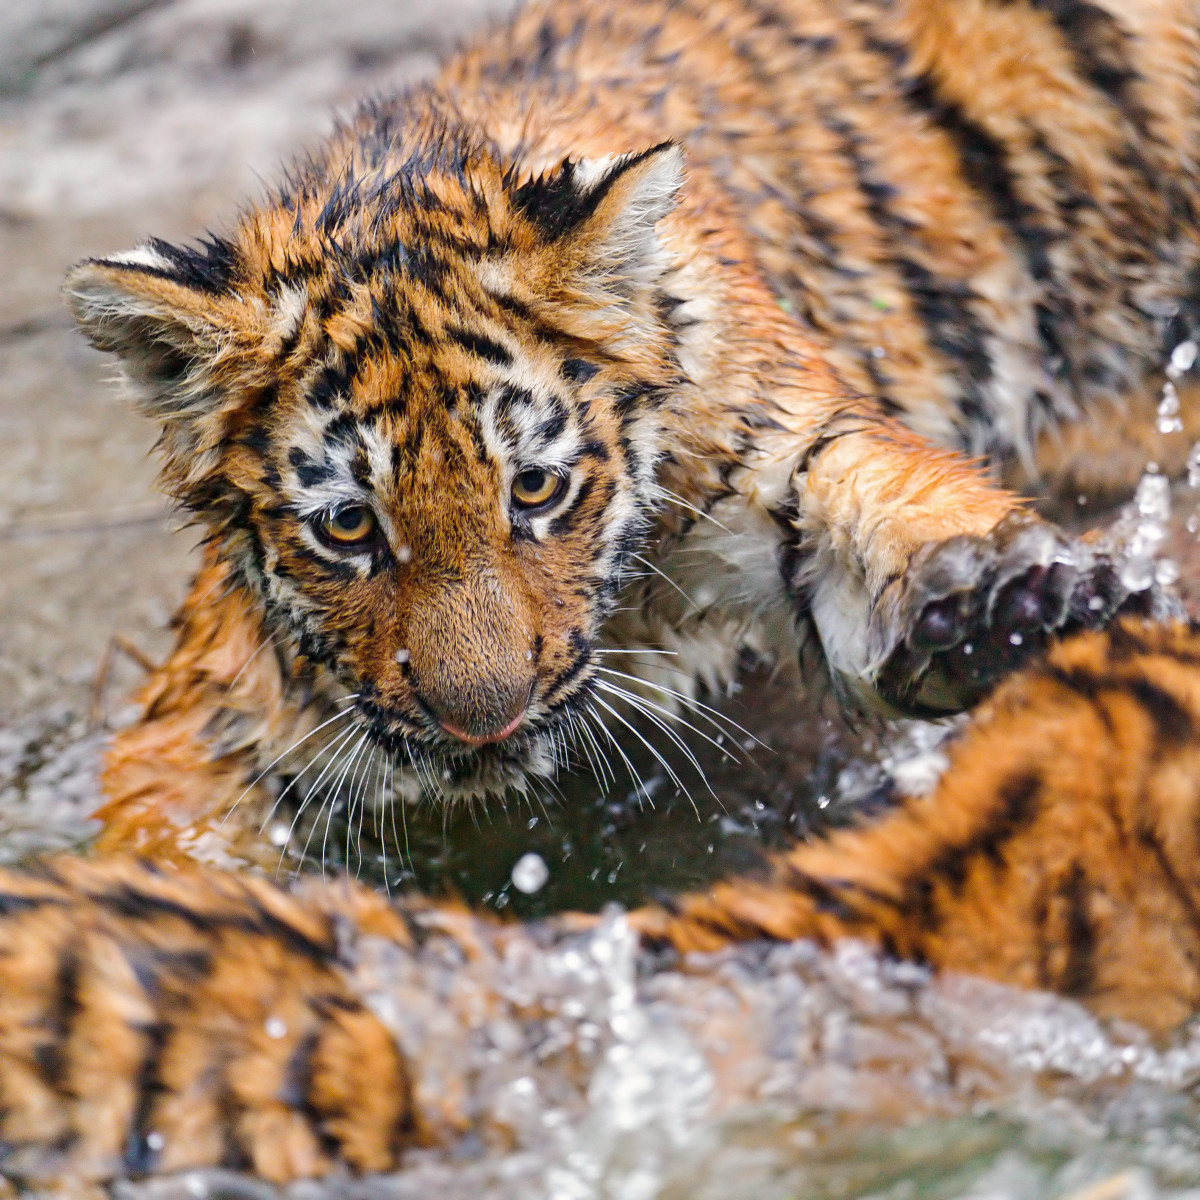 Cubs playing in the water